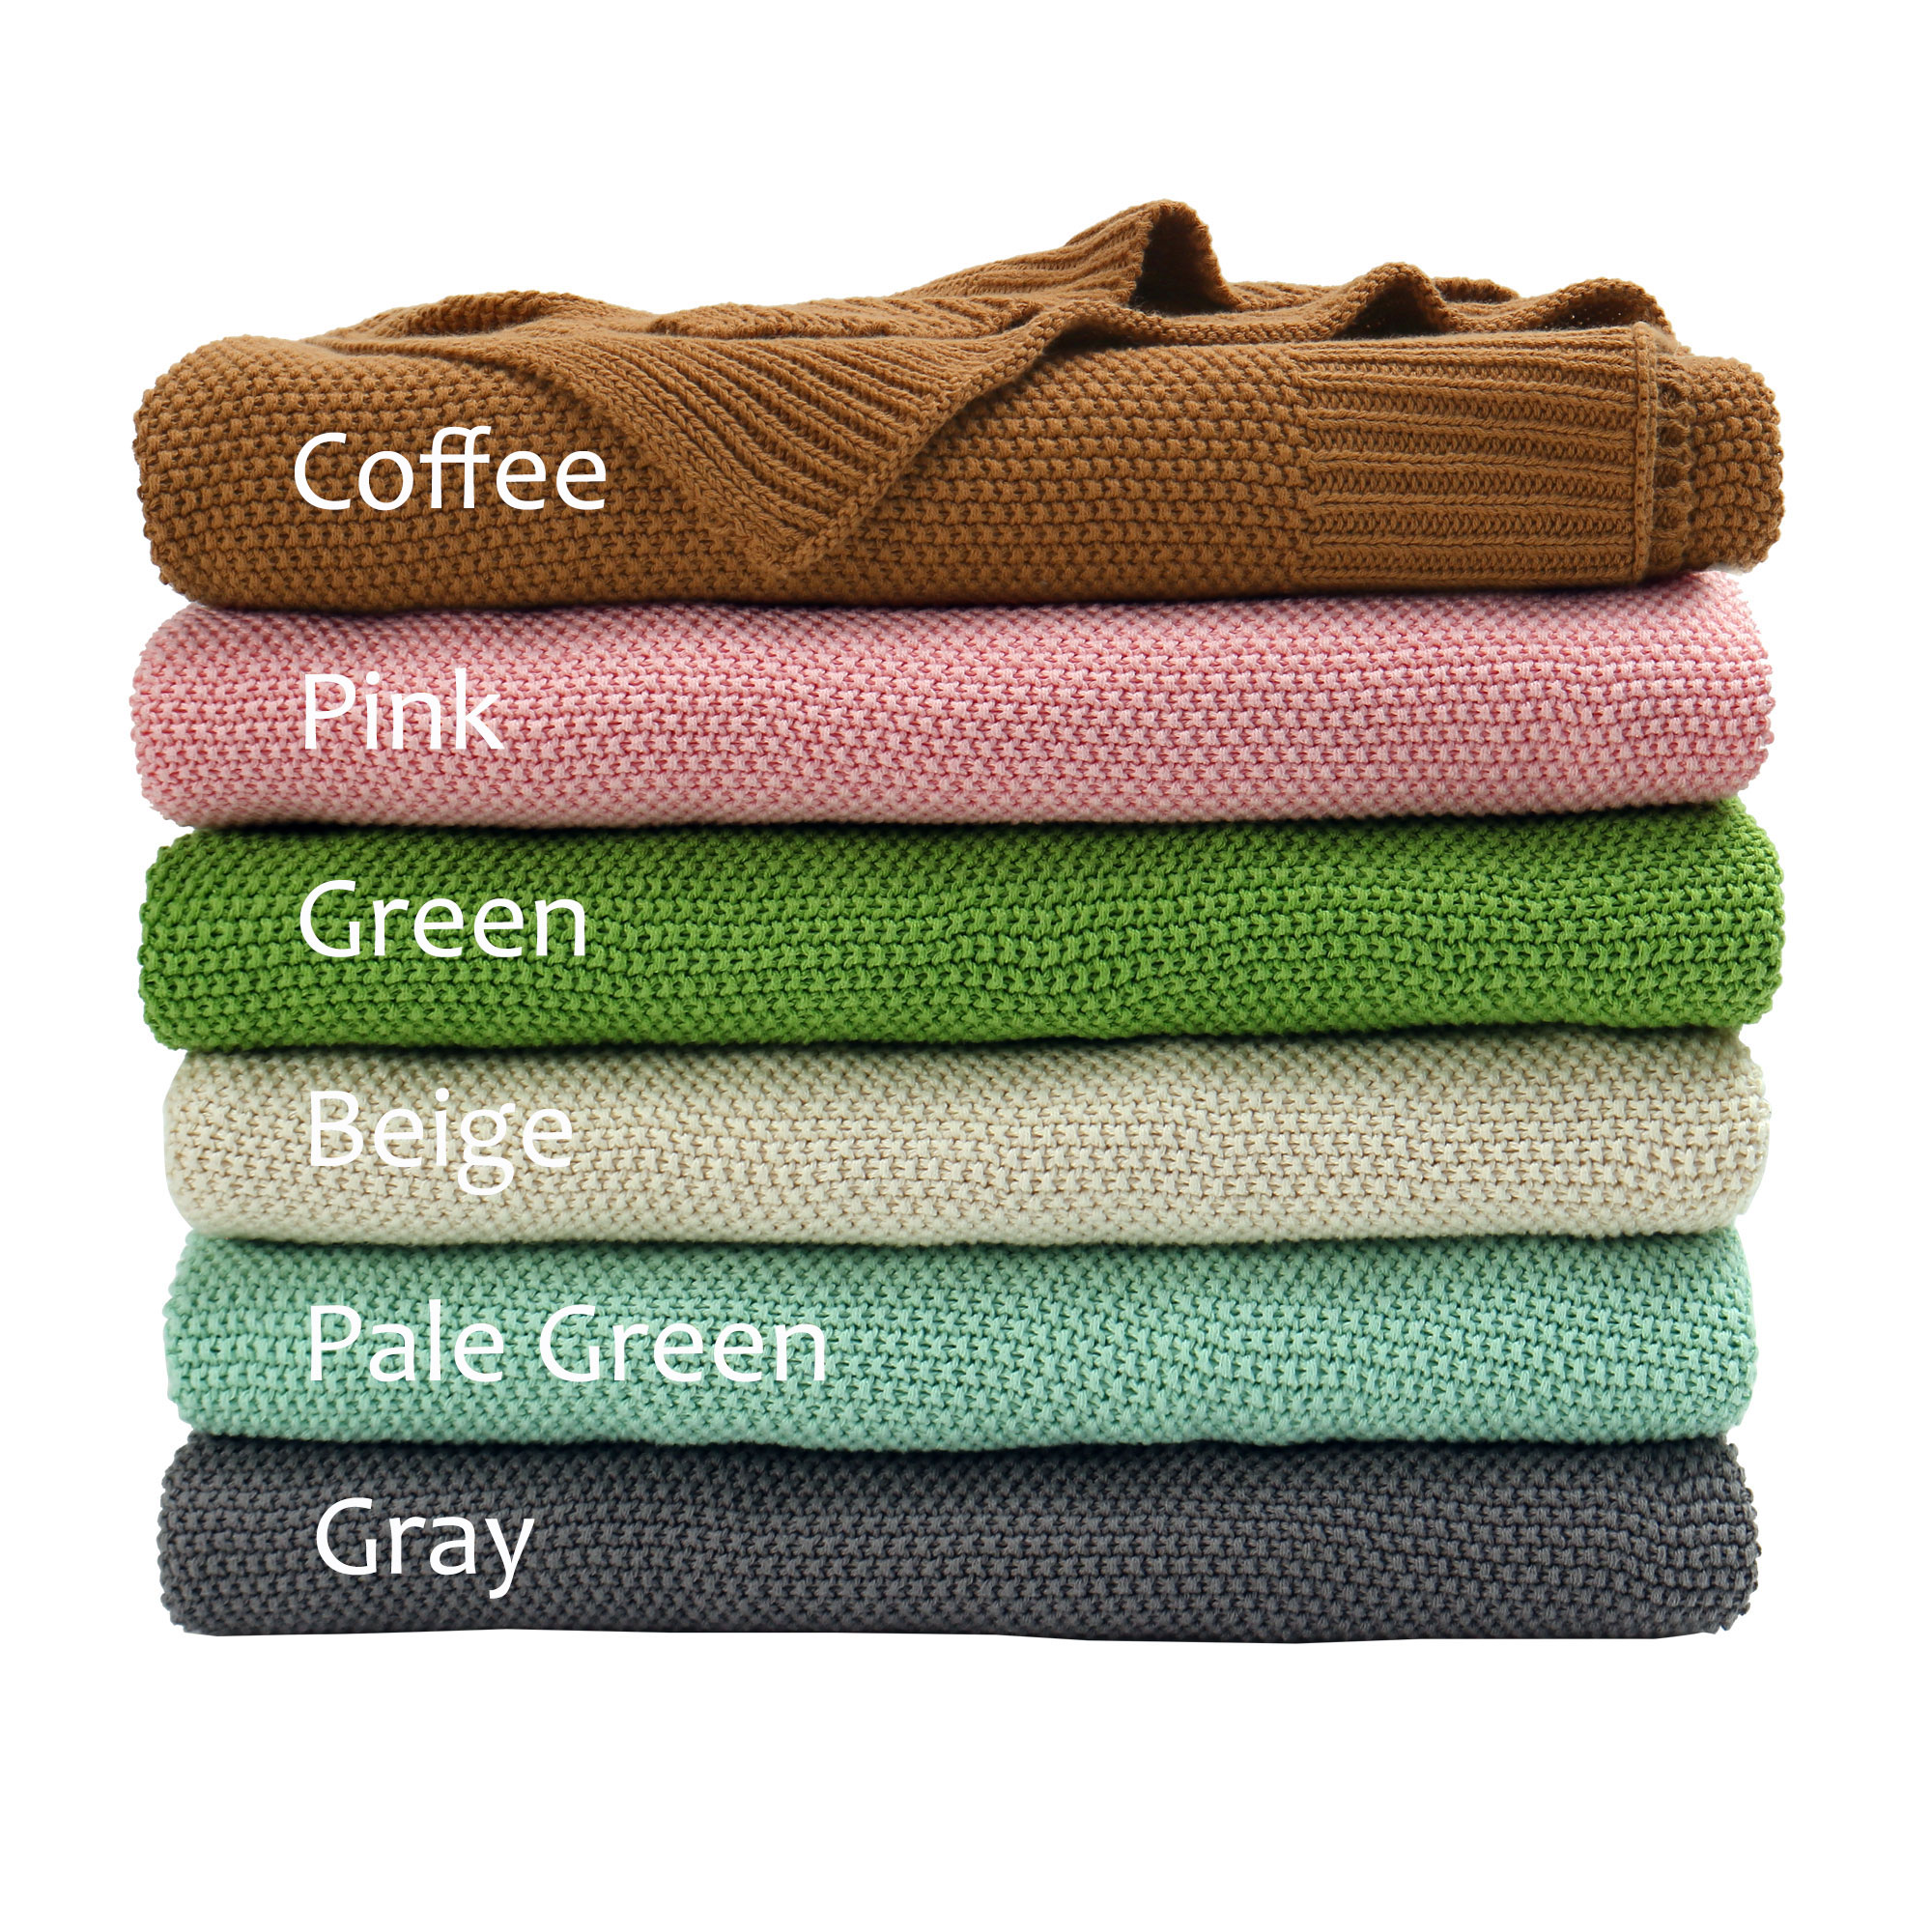 "Click here to buy 100% Cotton Soft Warm Knit Throw Blanket Bed Sofa Home Decor 50"" x 60"" Coffee...."